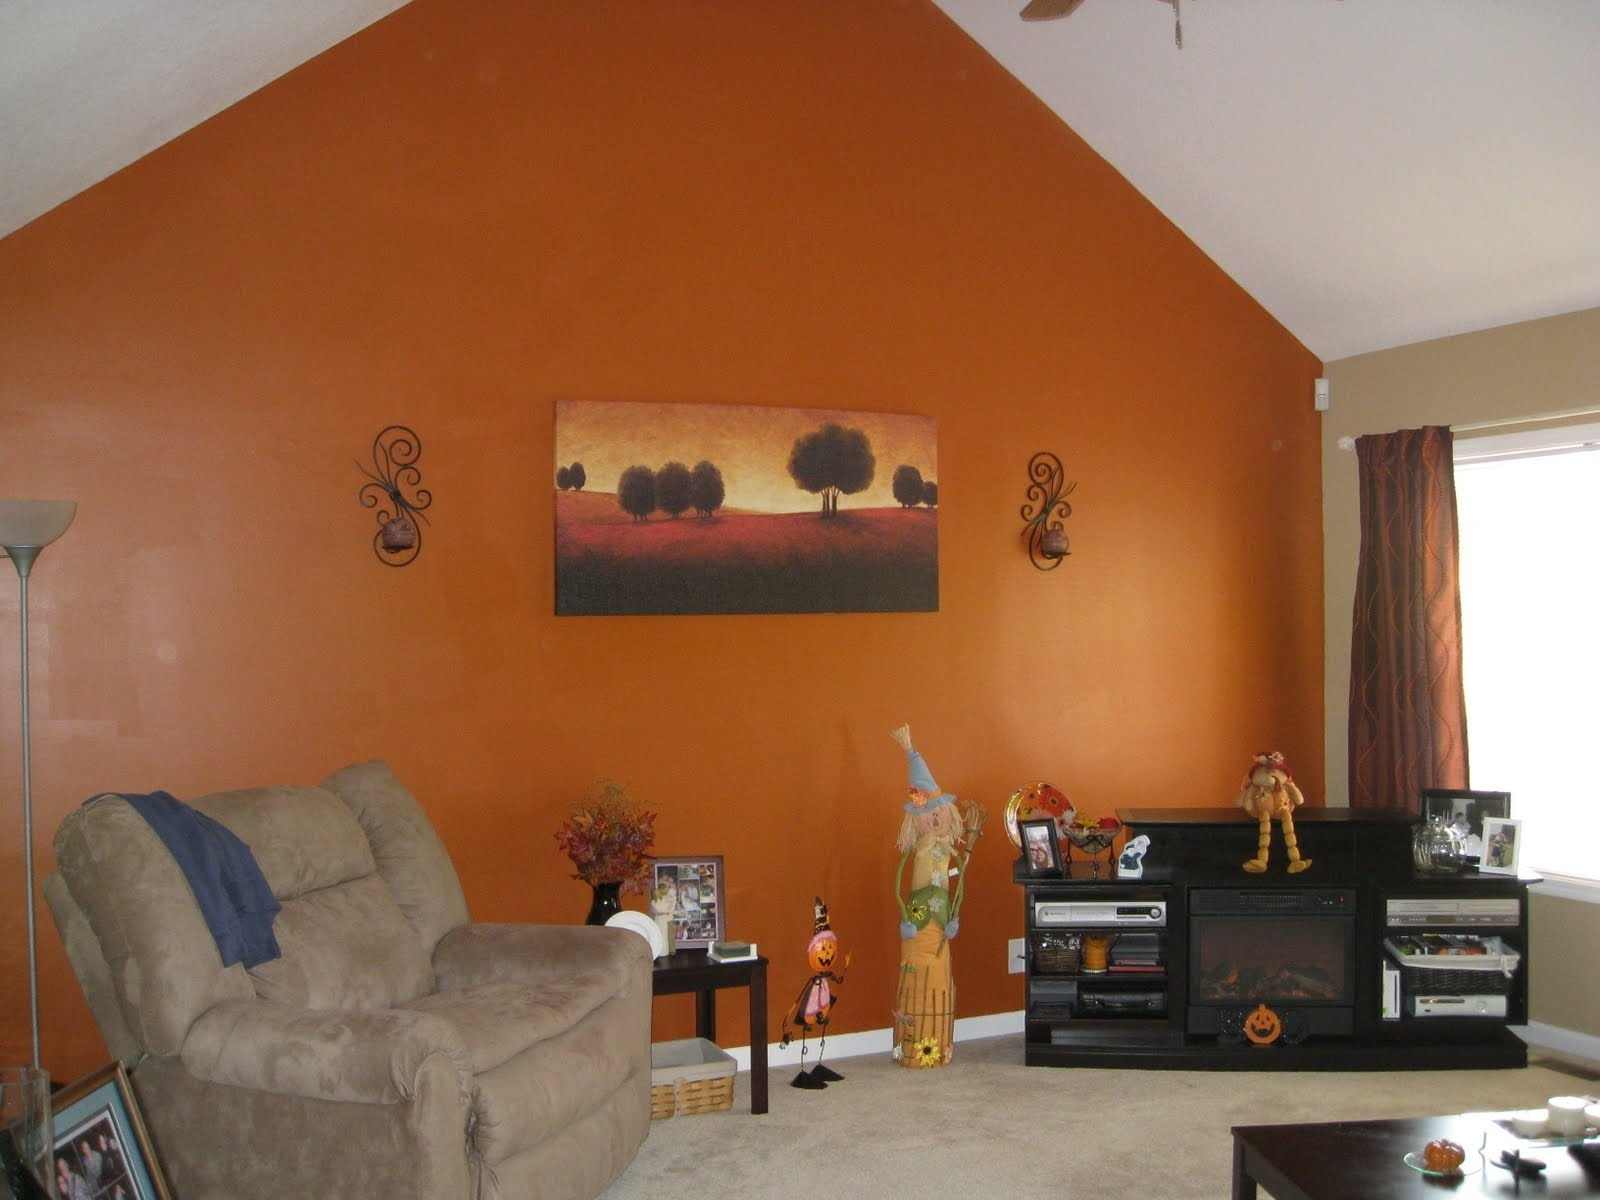 Orange Accent Wall Living Room | Simple Home Decoration | Kitchen Intended For 2017 Wall Accents For Yellow Room (View 12 of 15)